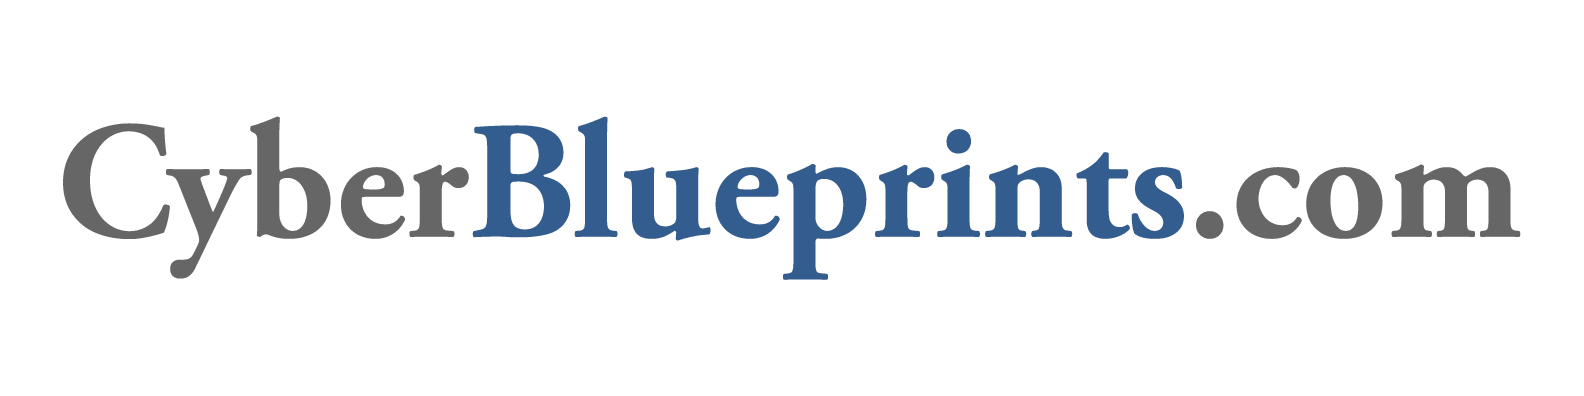 CyberBlueprints.com, Inc. | Digital Marketing Agency | Virginia Beach Area